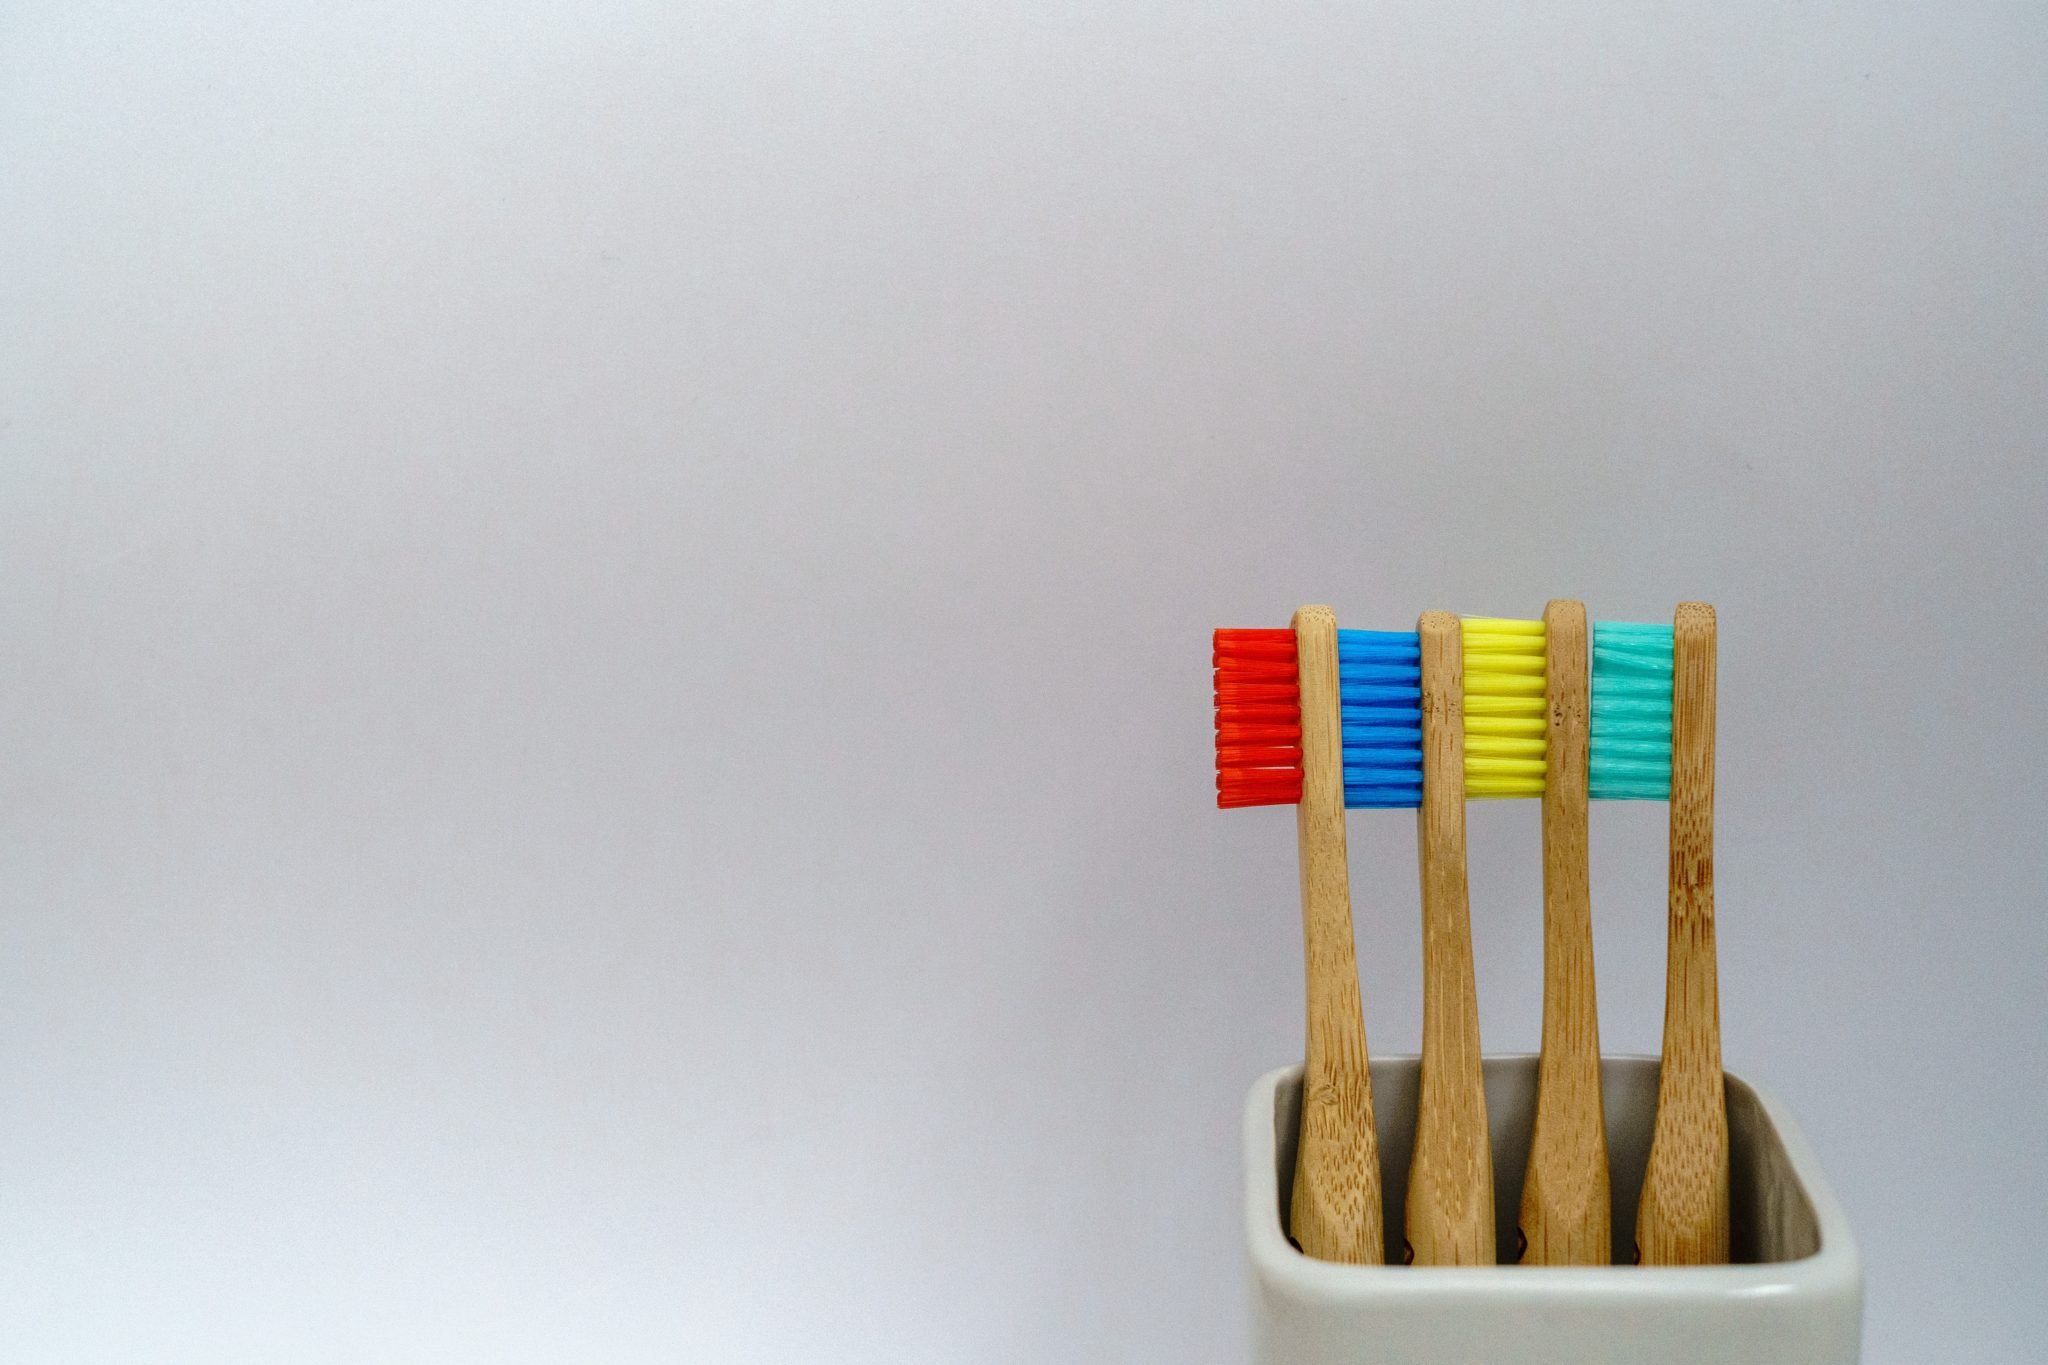 multiple wooden toothbrushes for children lined up against each other against a white background